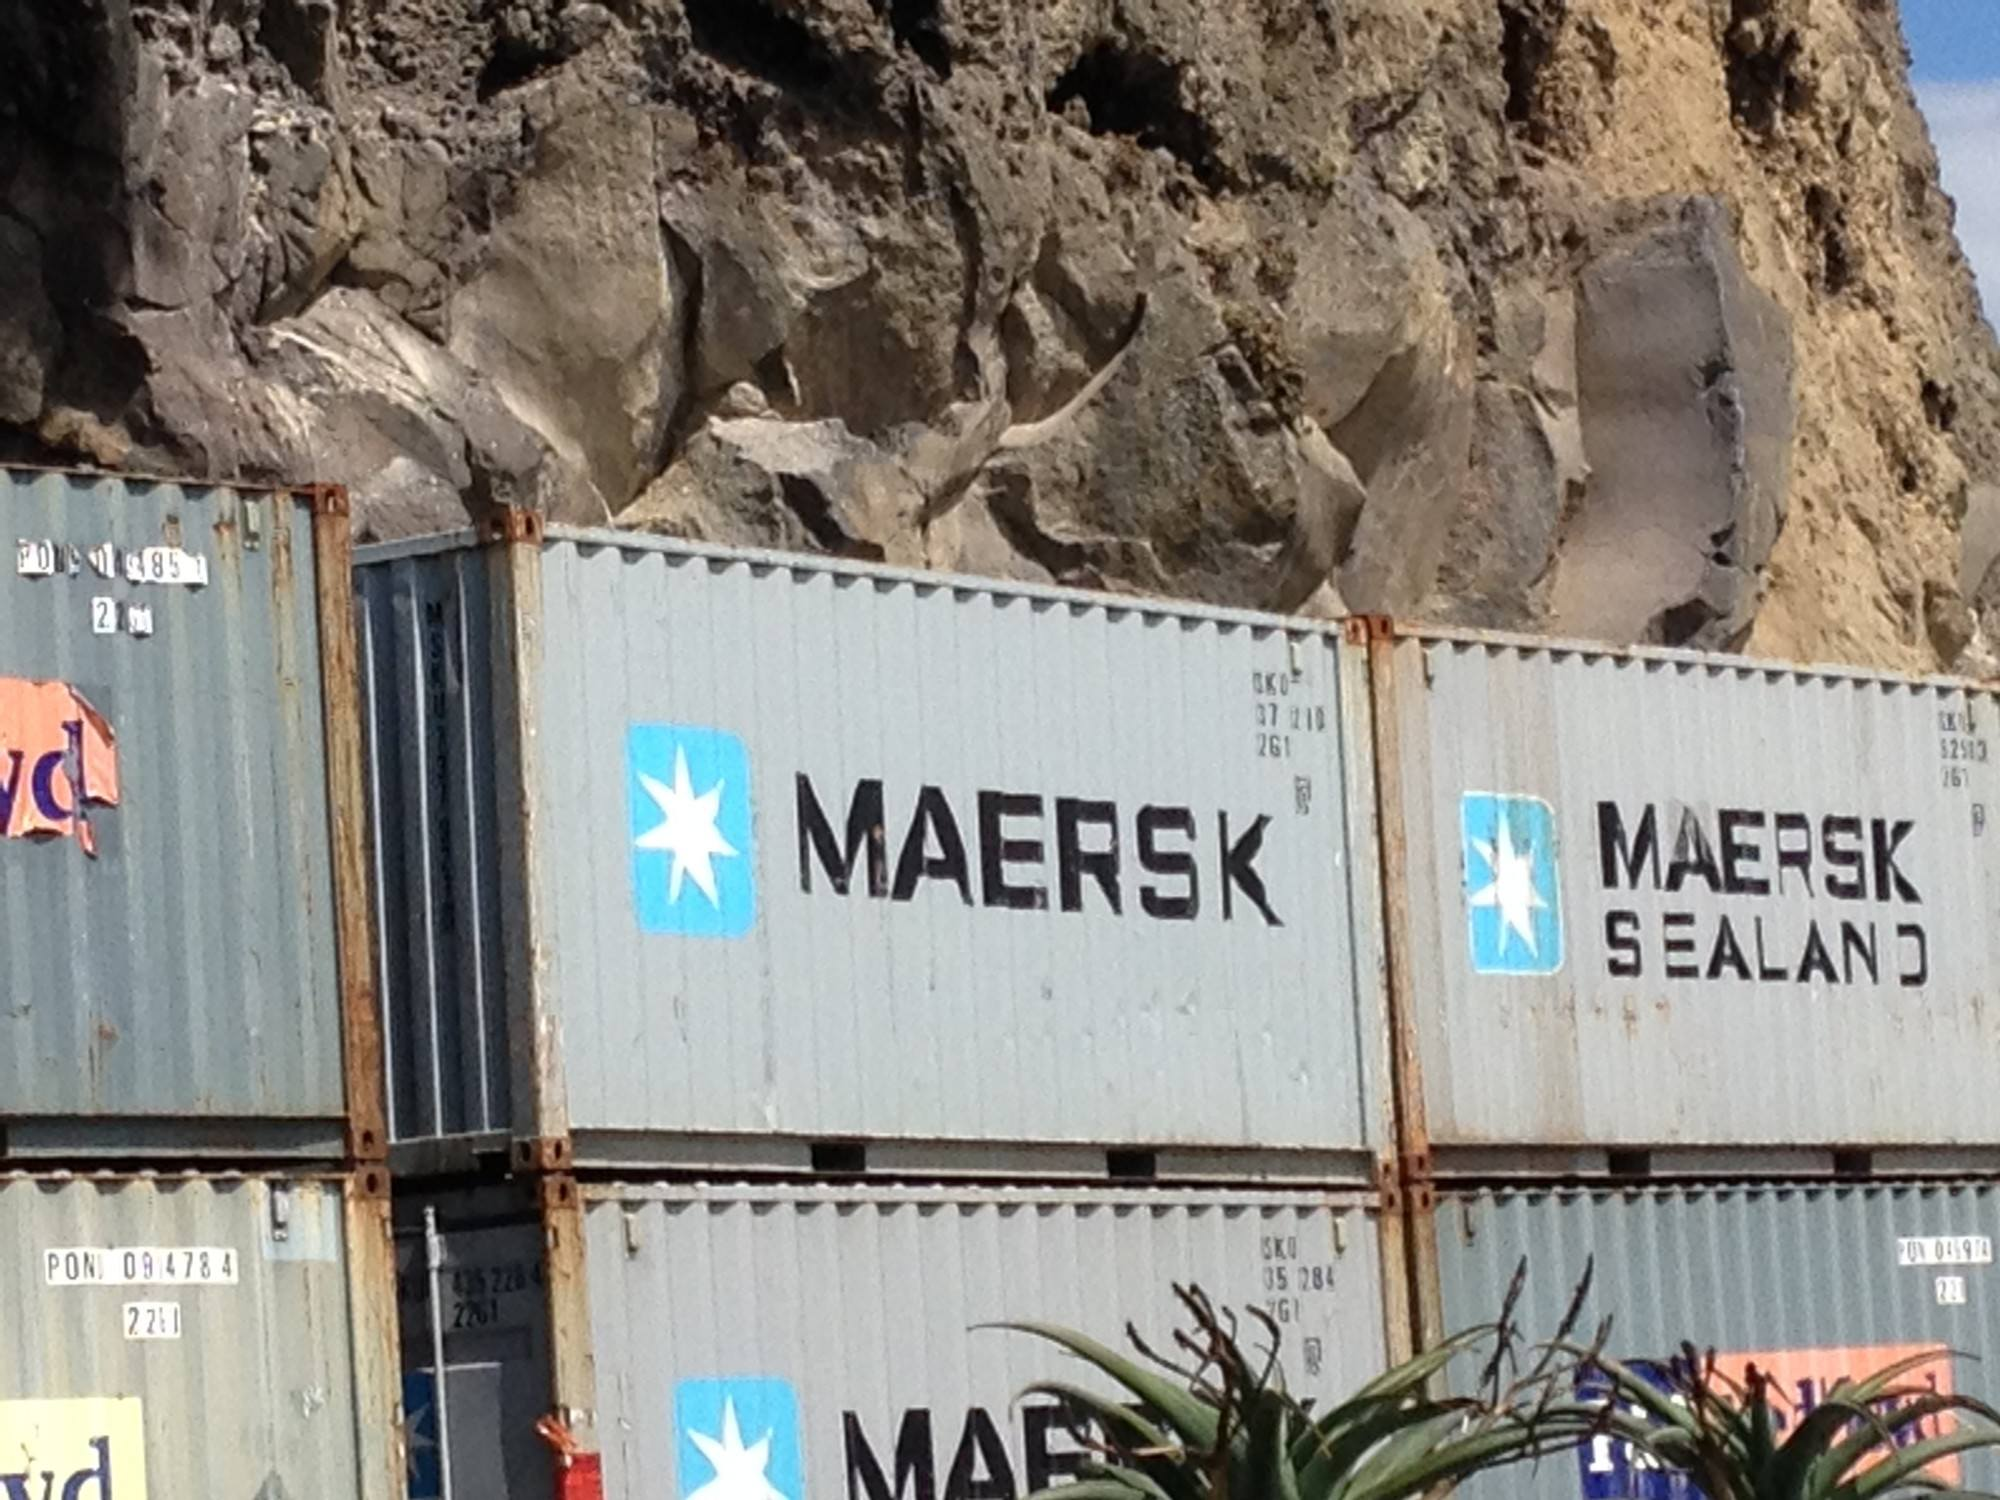 Shipping container retaining walls